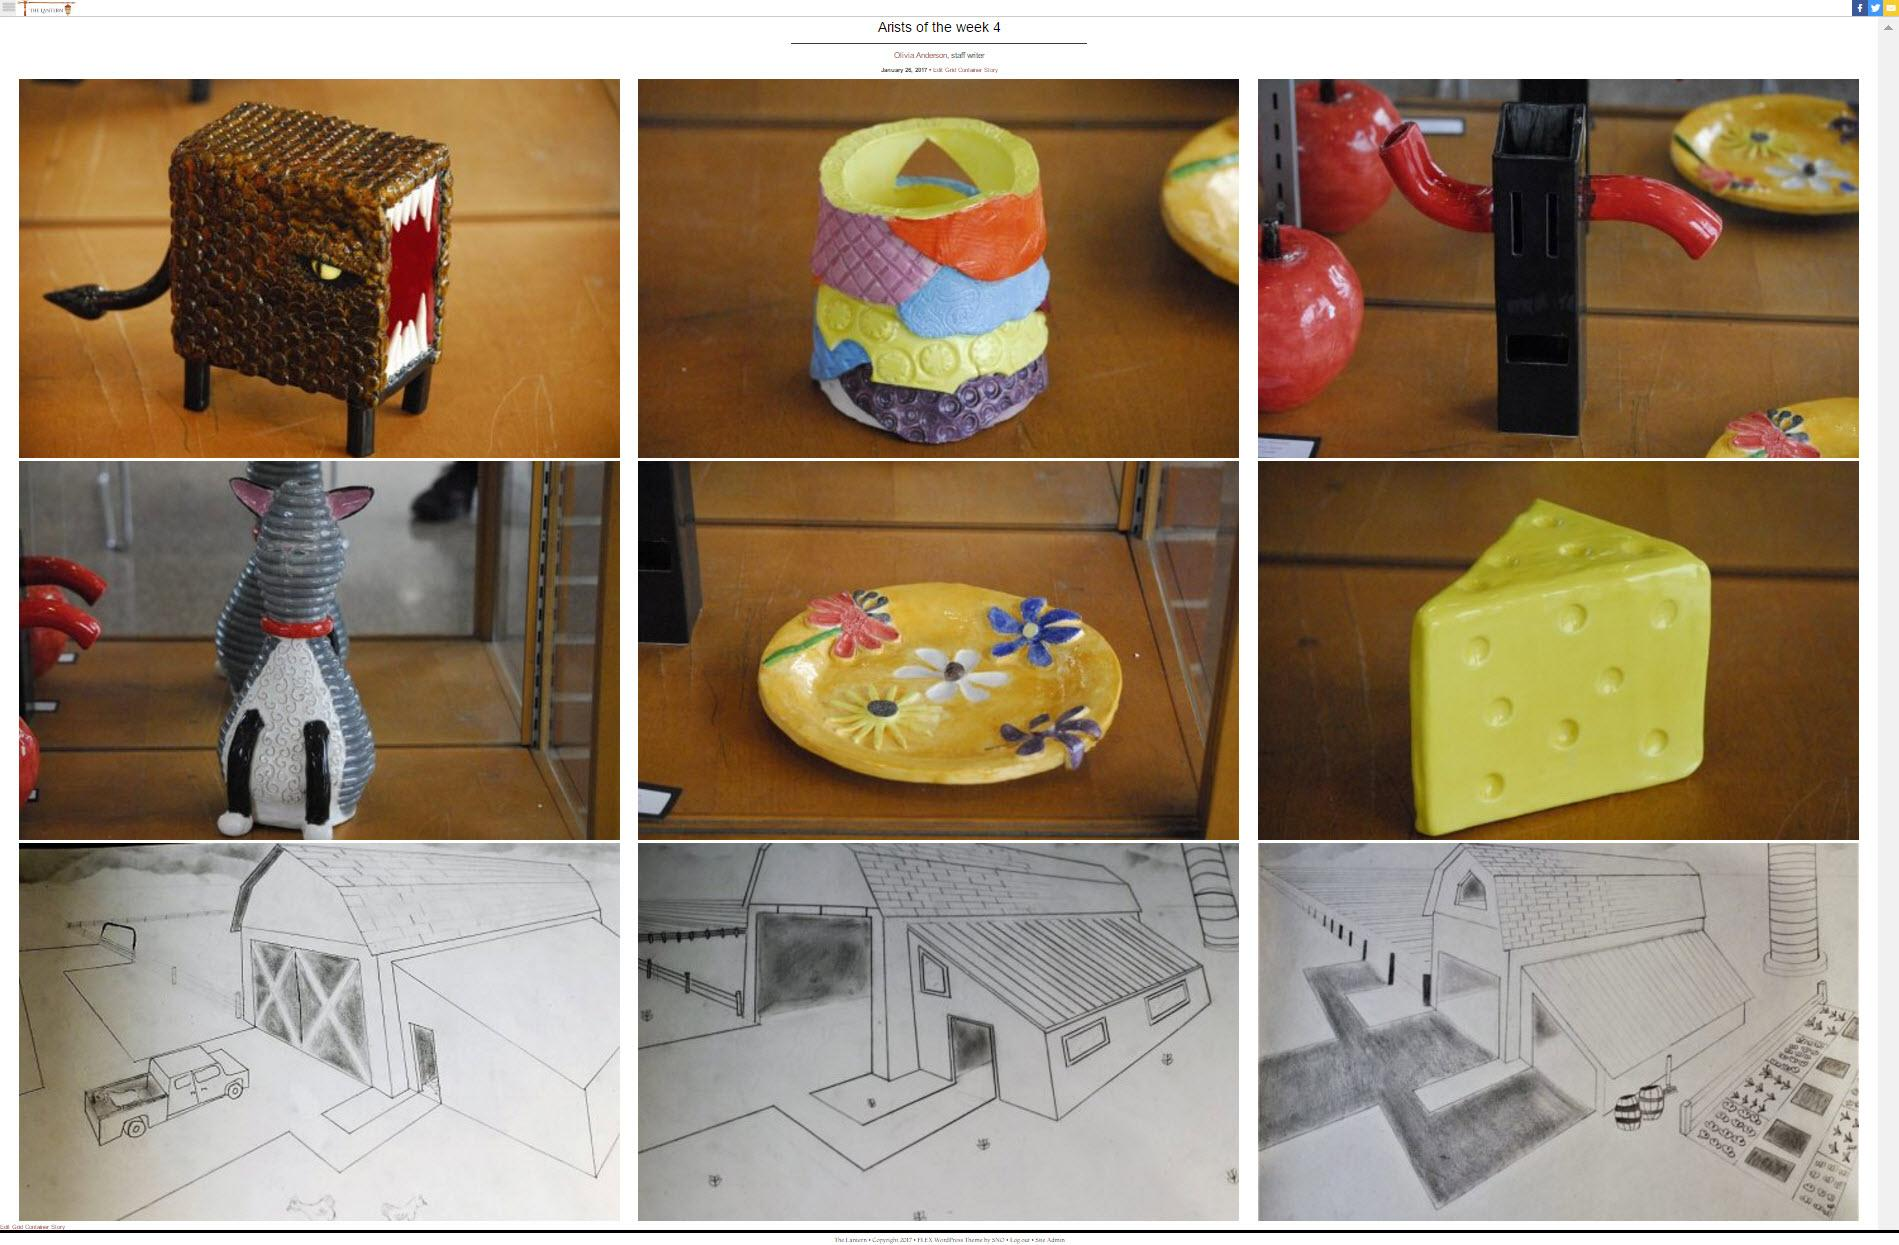 Featuring pottery such as cats and cheese and drawings of barns, students are highlighted weekly for their abilities